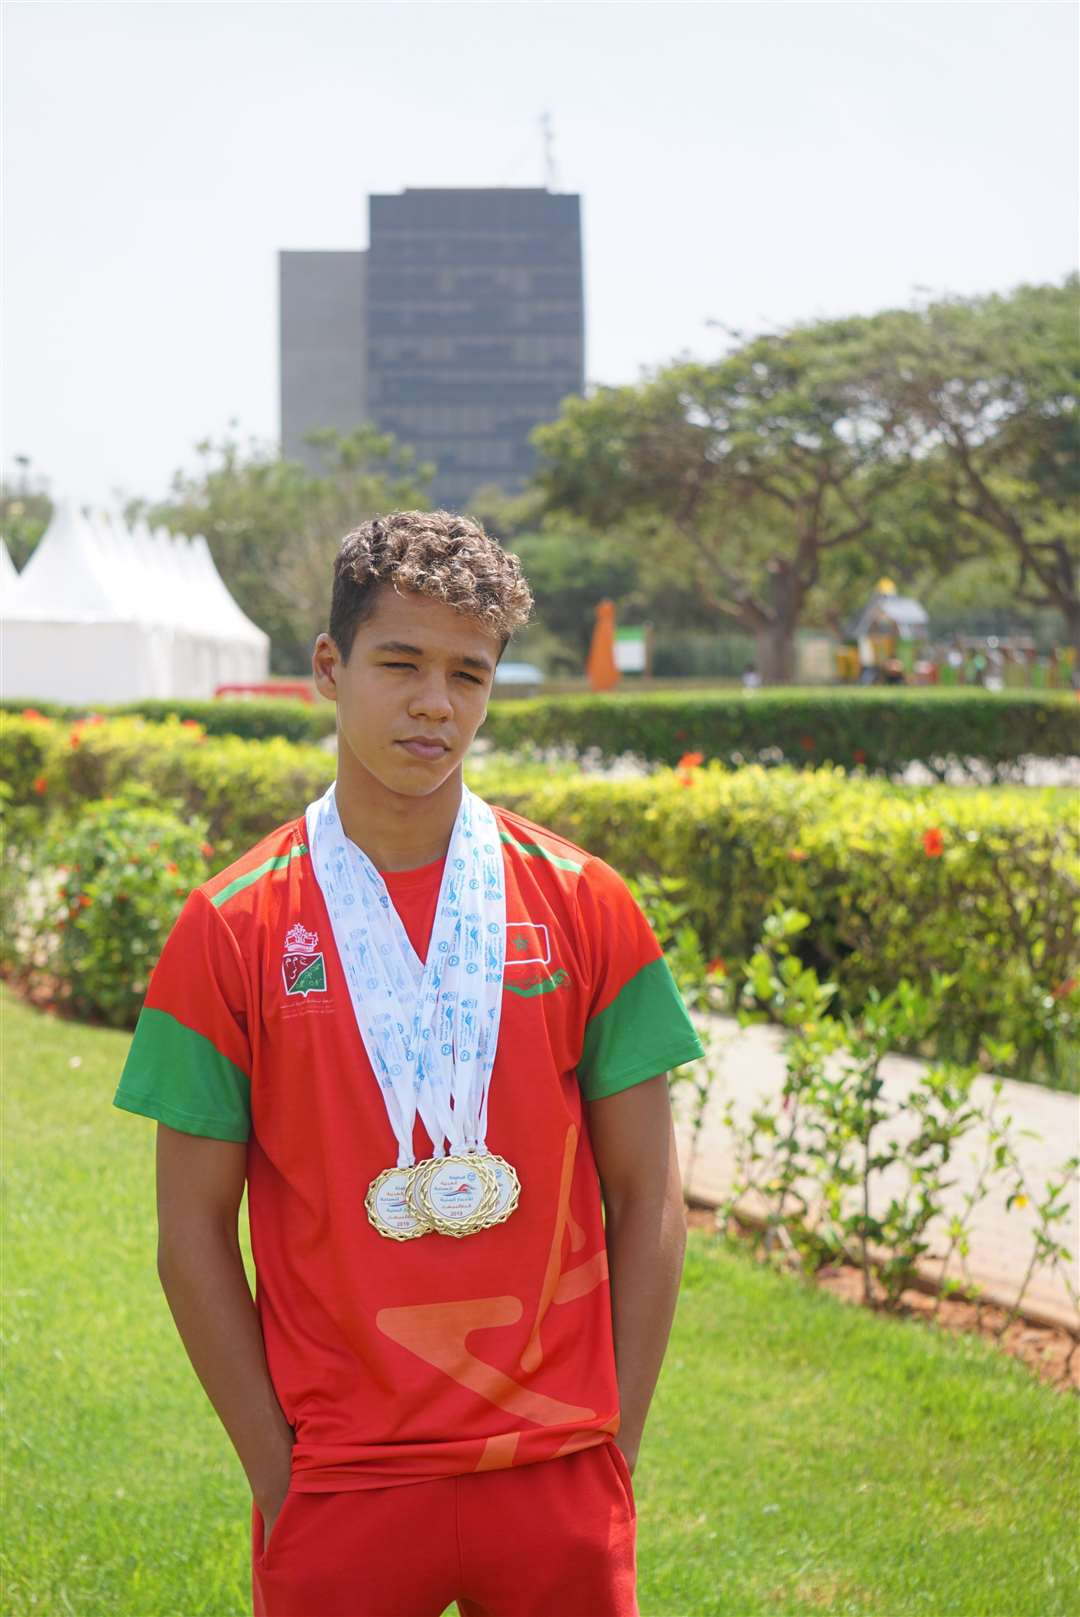 Mehdi El Mansar won eight medals at the 14th Arab Junior Swimming Championships (16010520)